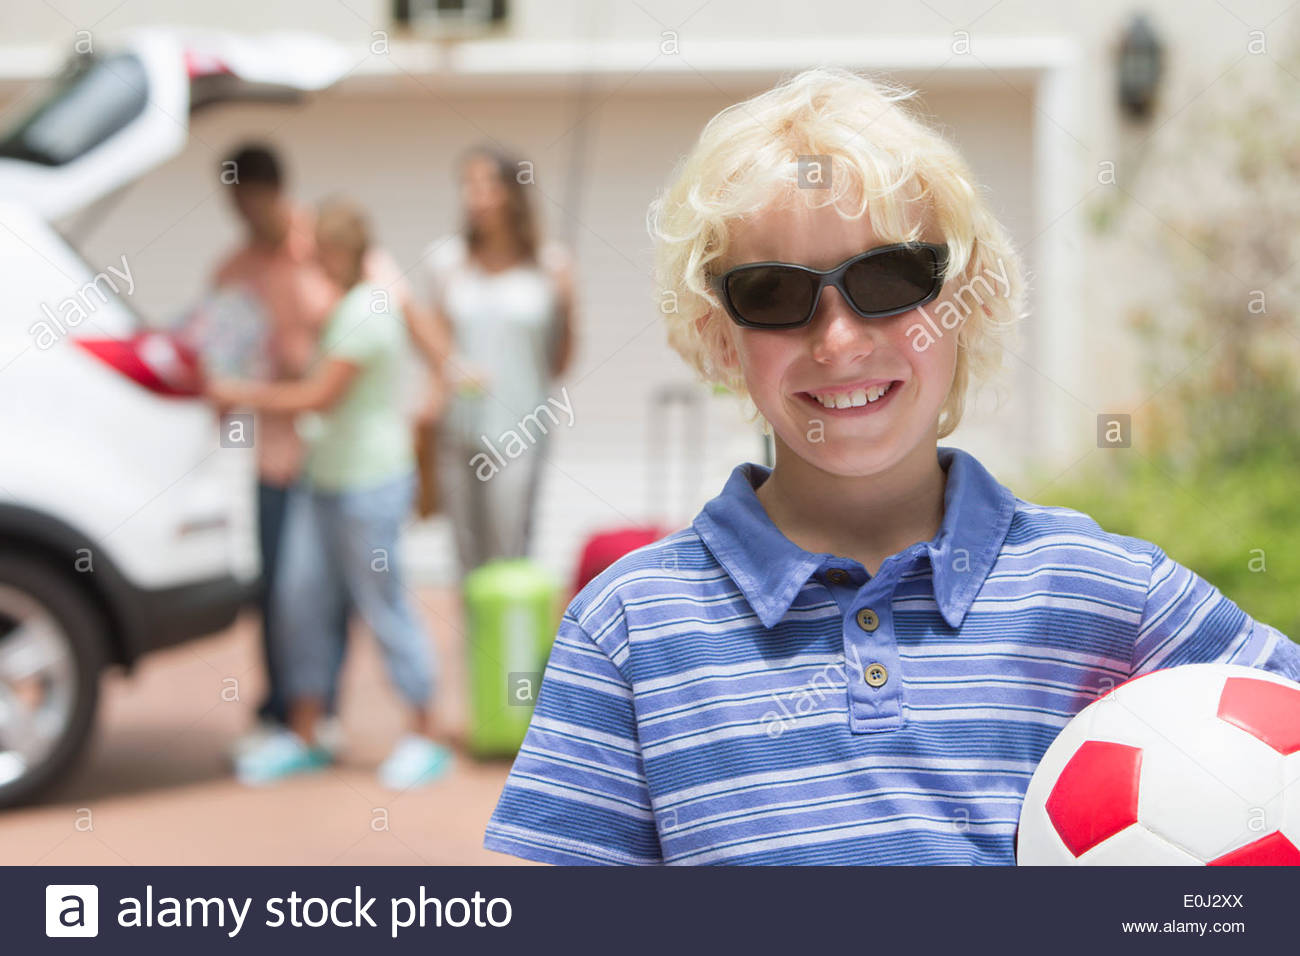 Portrait of smiling boy in sunglasses holding soccer ball in sunny driveway - Stock Image